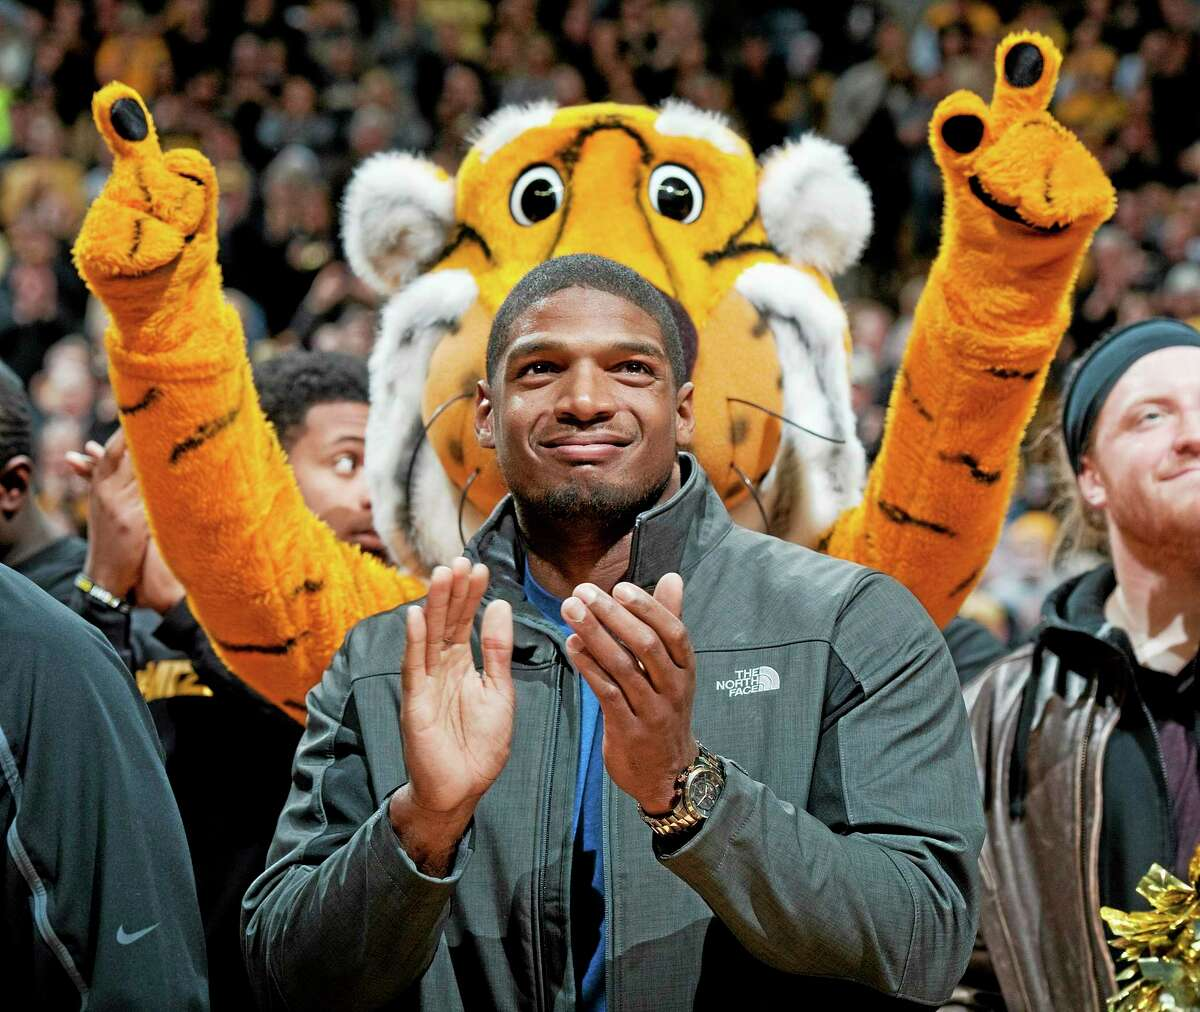 In this Feb. 15 file photo, Missouri's All-American defensive end Michael Sam claps during the Cotton Bowl trophy presentation at halftime of a college basketball game between Missouri and Tennessee in Columbia, Mo. Sam has been selected the winner of the Arthur Ashe Courage Award. The Missouri defensive end who likely will be drafted by an NFL team this weekend, will receive the award given to individuals who transcend sports at The ESPYs on July 16.